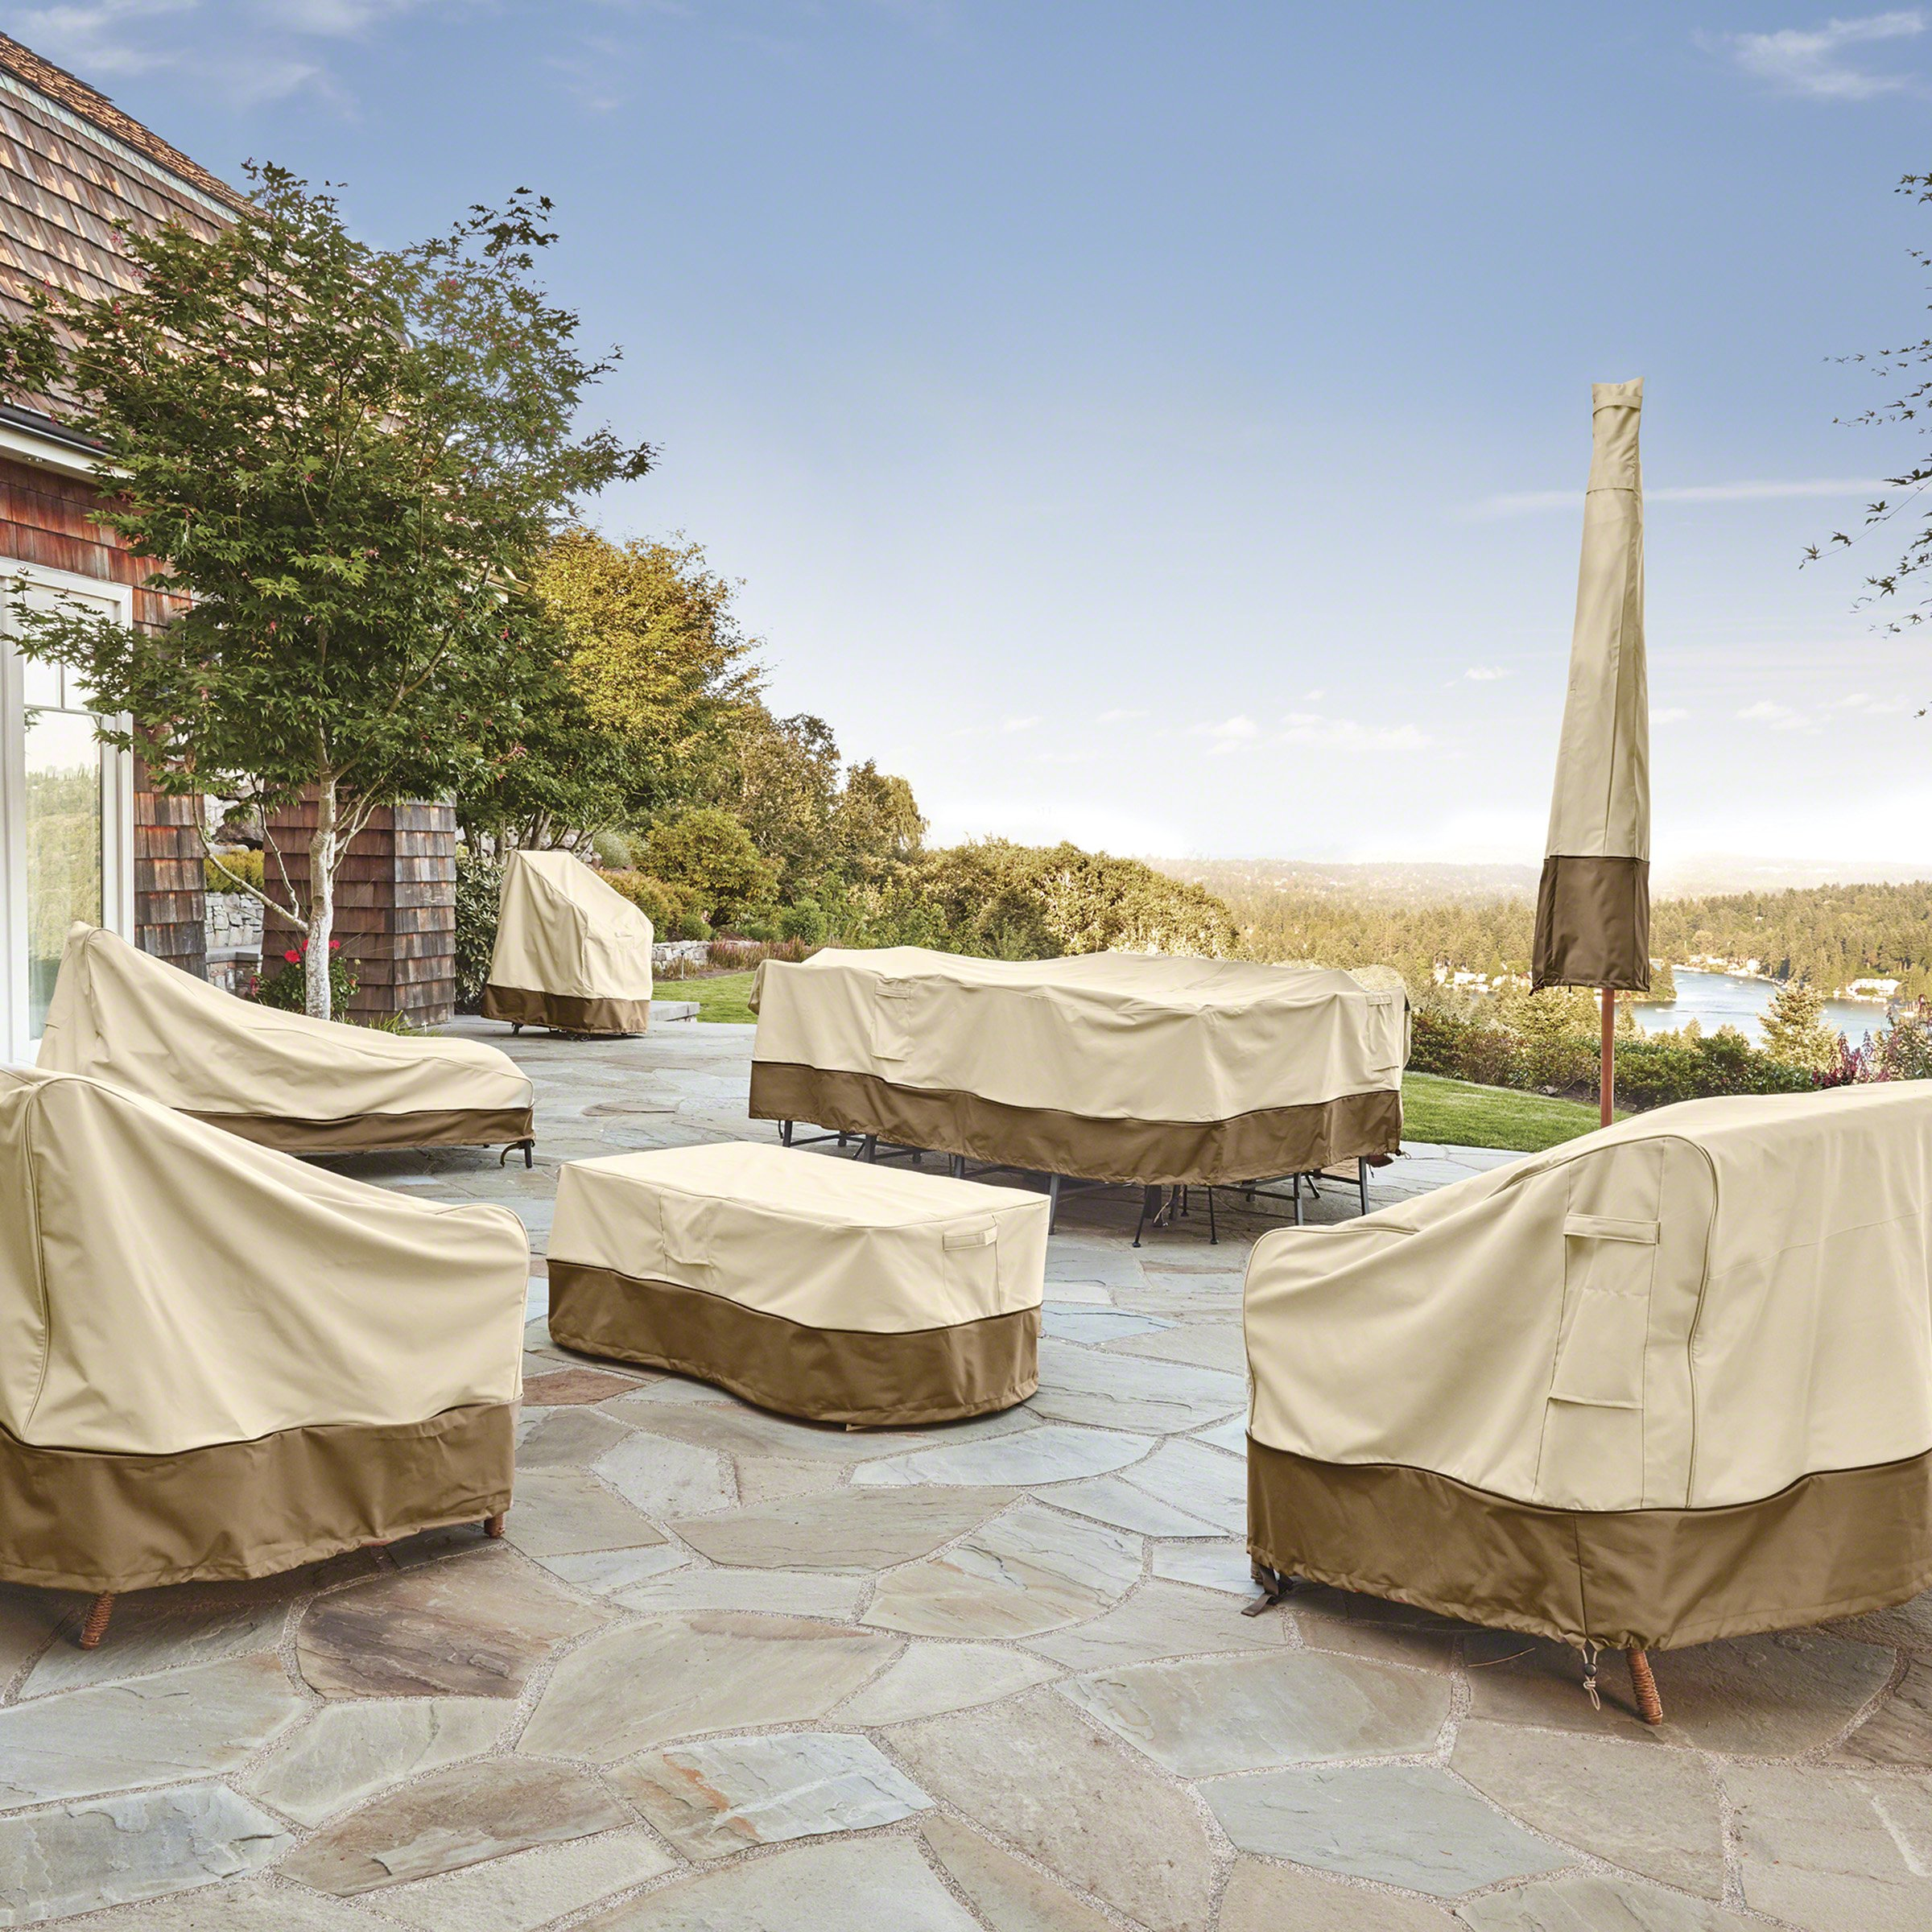 Classic Accessories Veranda Patio Deep Seat Lounge Chair Cover (4-Pack) by Classic Accessories (Image #6)